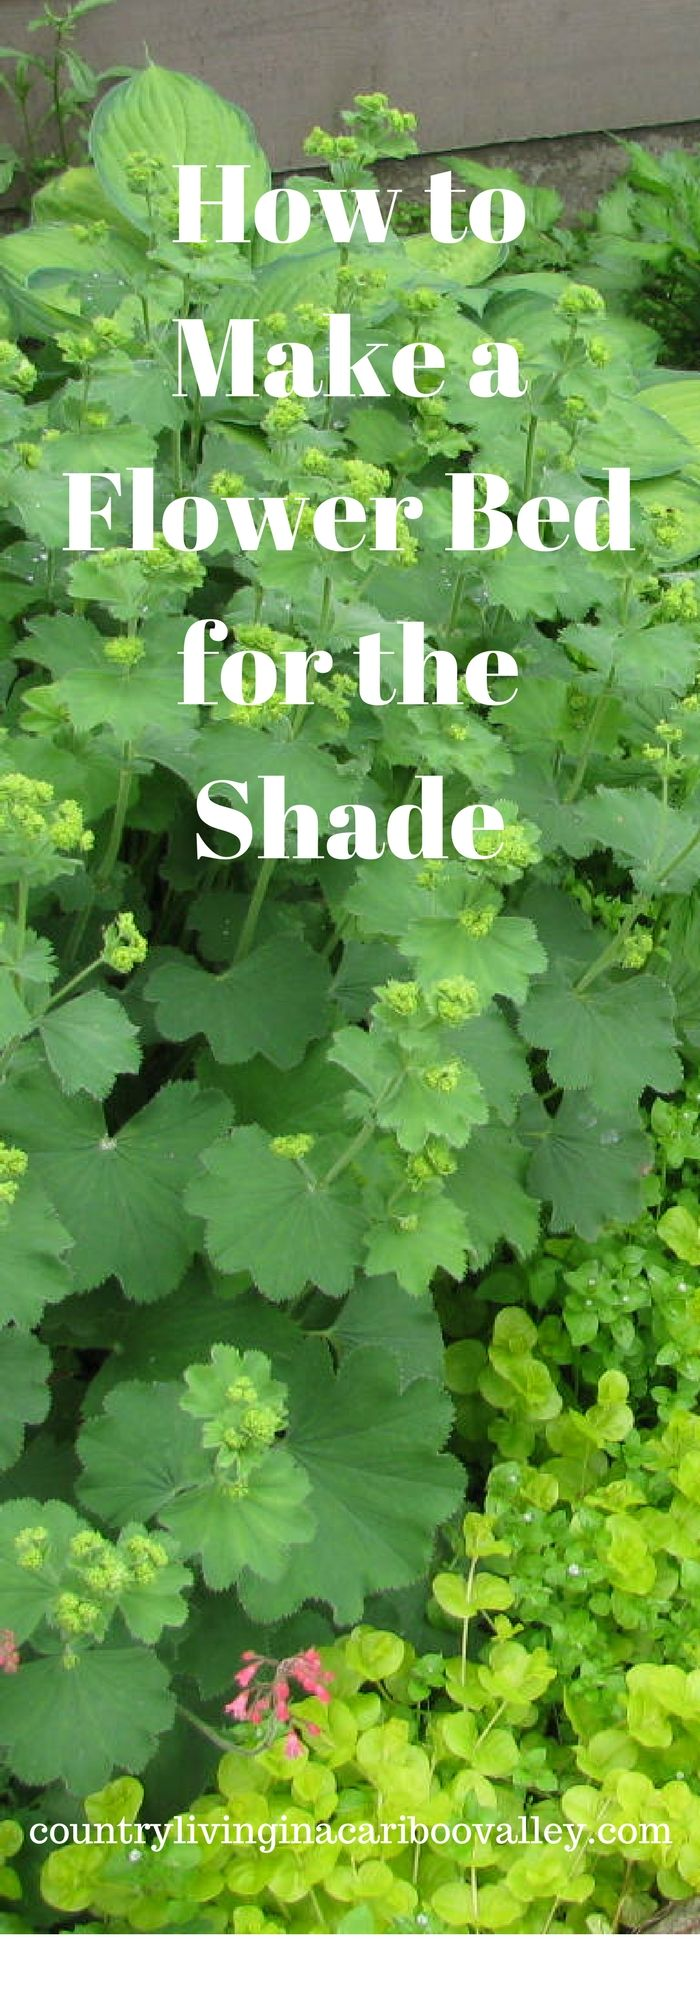 Create A Perennial Flower Bed For The Shade Shade Garden Plants